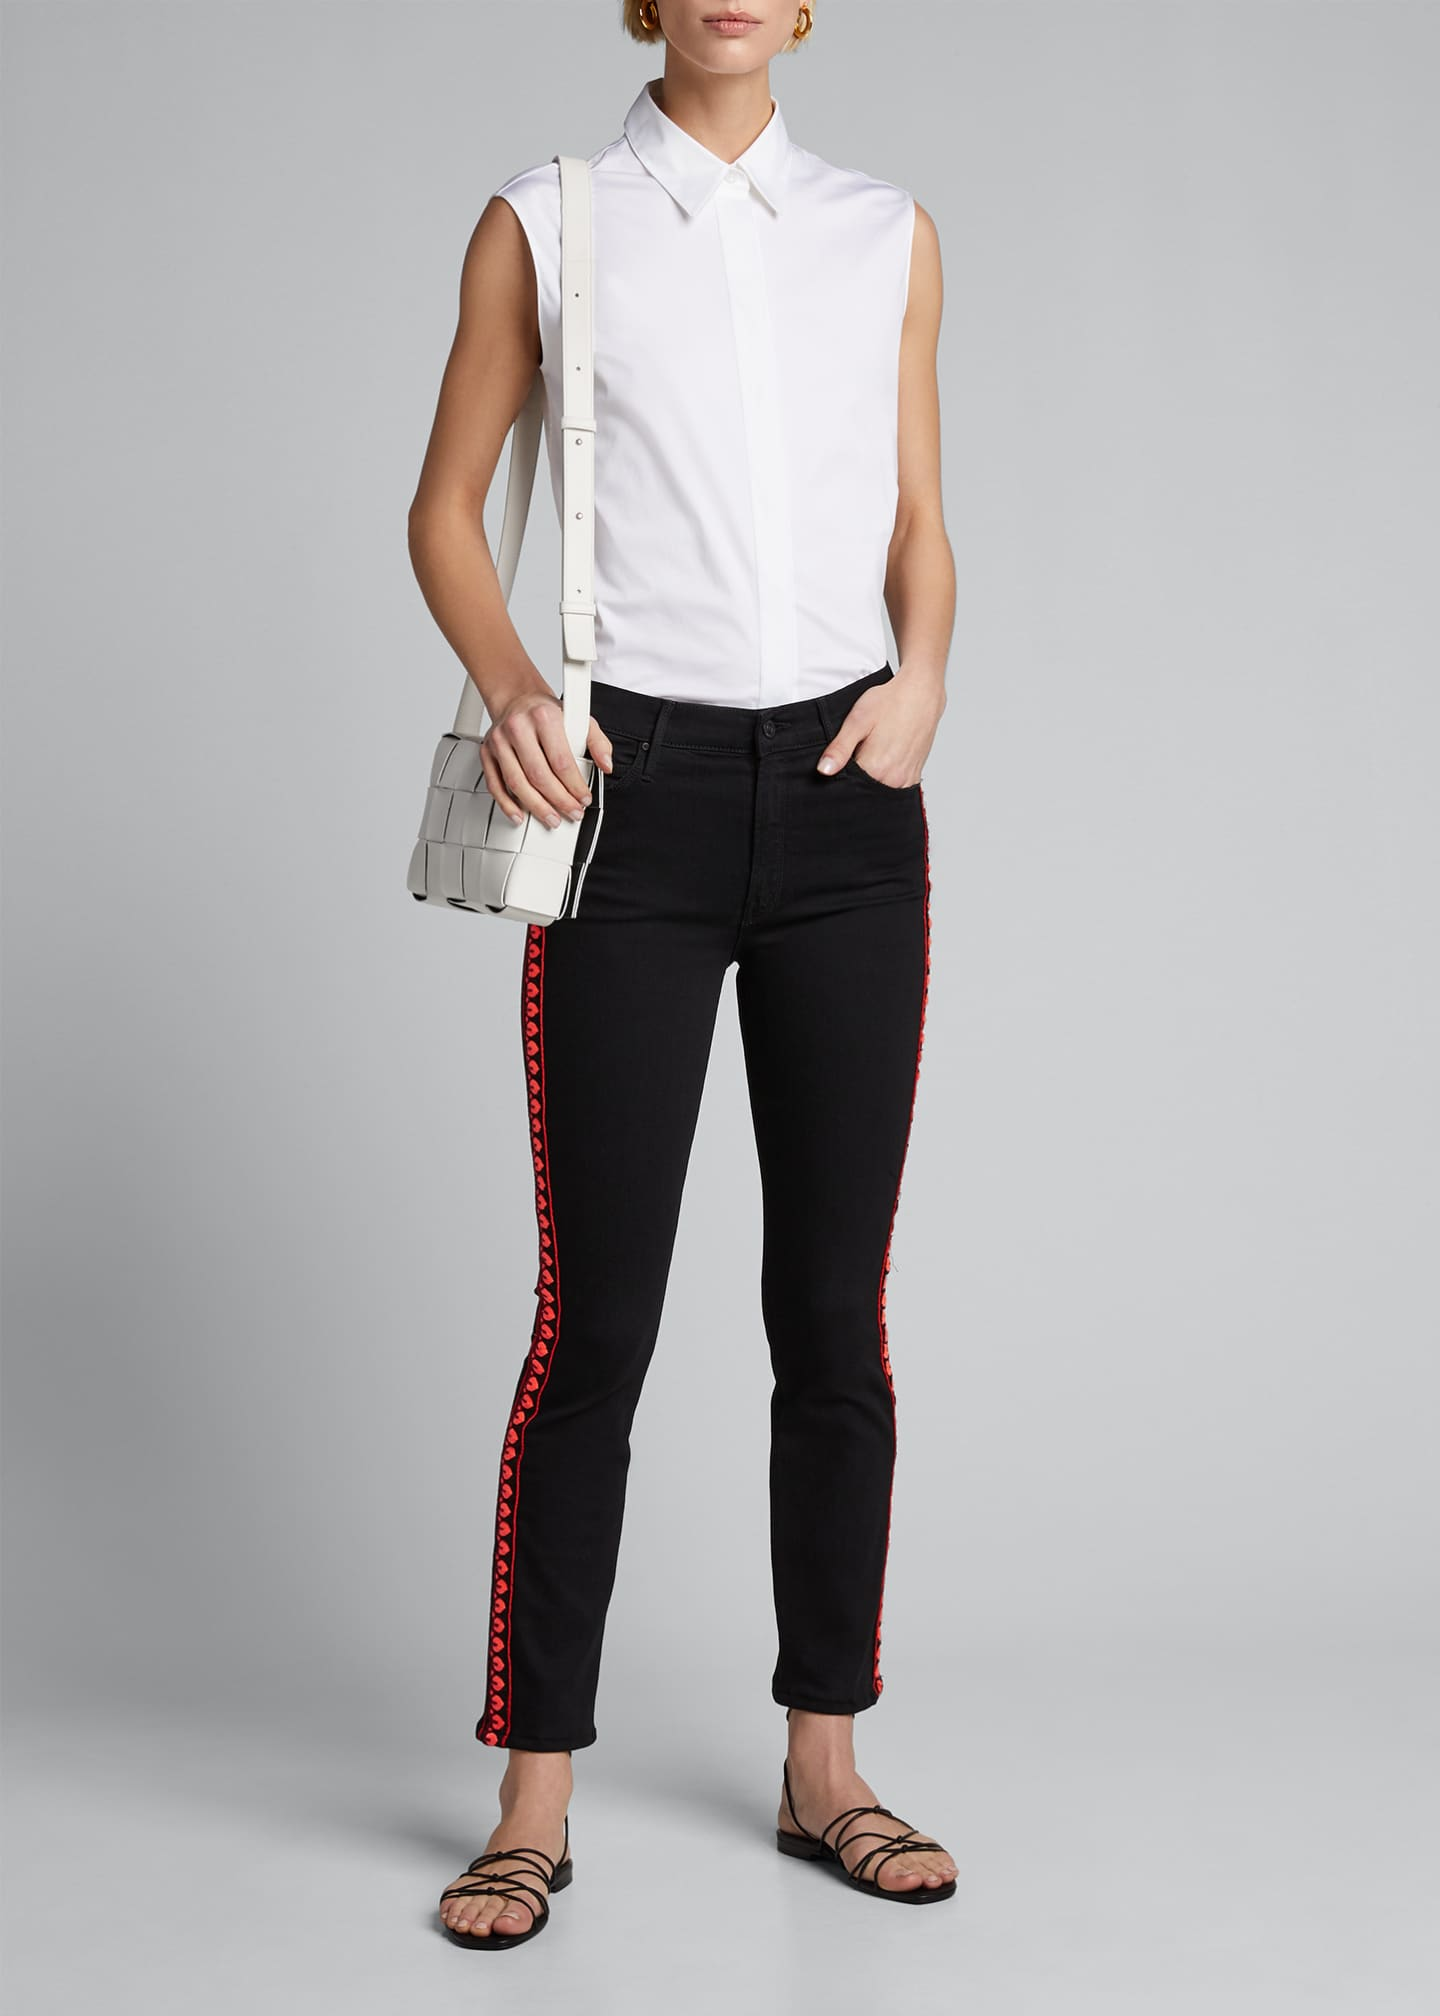 Image 1 of 5: The Mid-Rise Dazzler Ankle Jeans